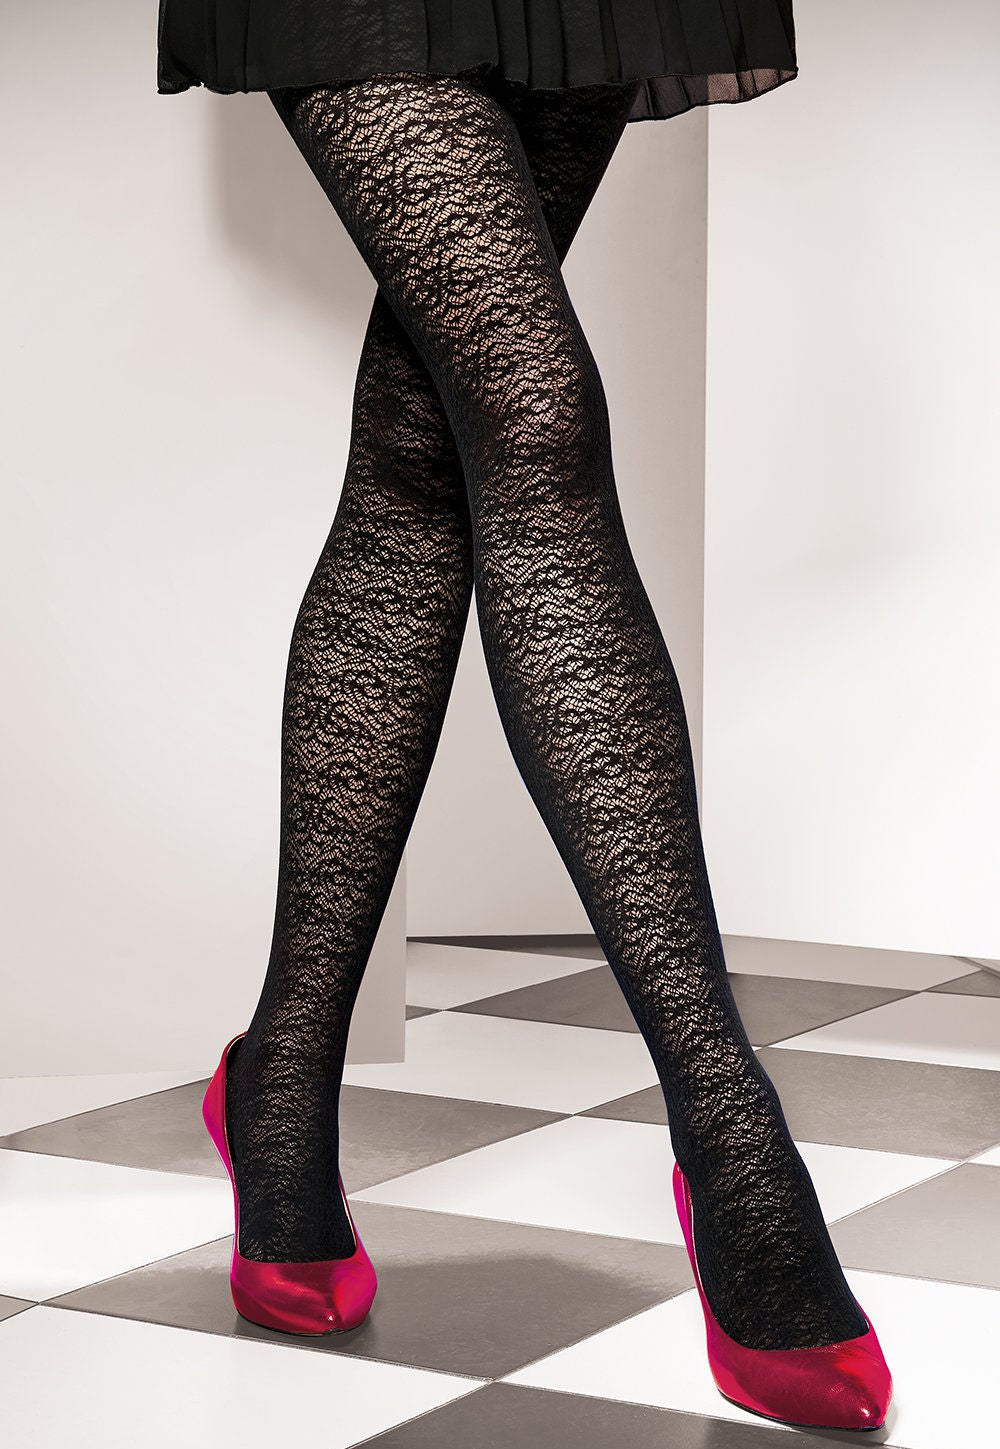 Est Belle 02 Lace Patterned Black Opaque Tights by Gatta